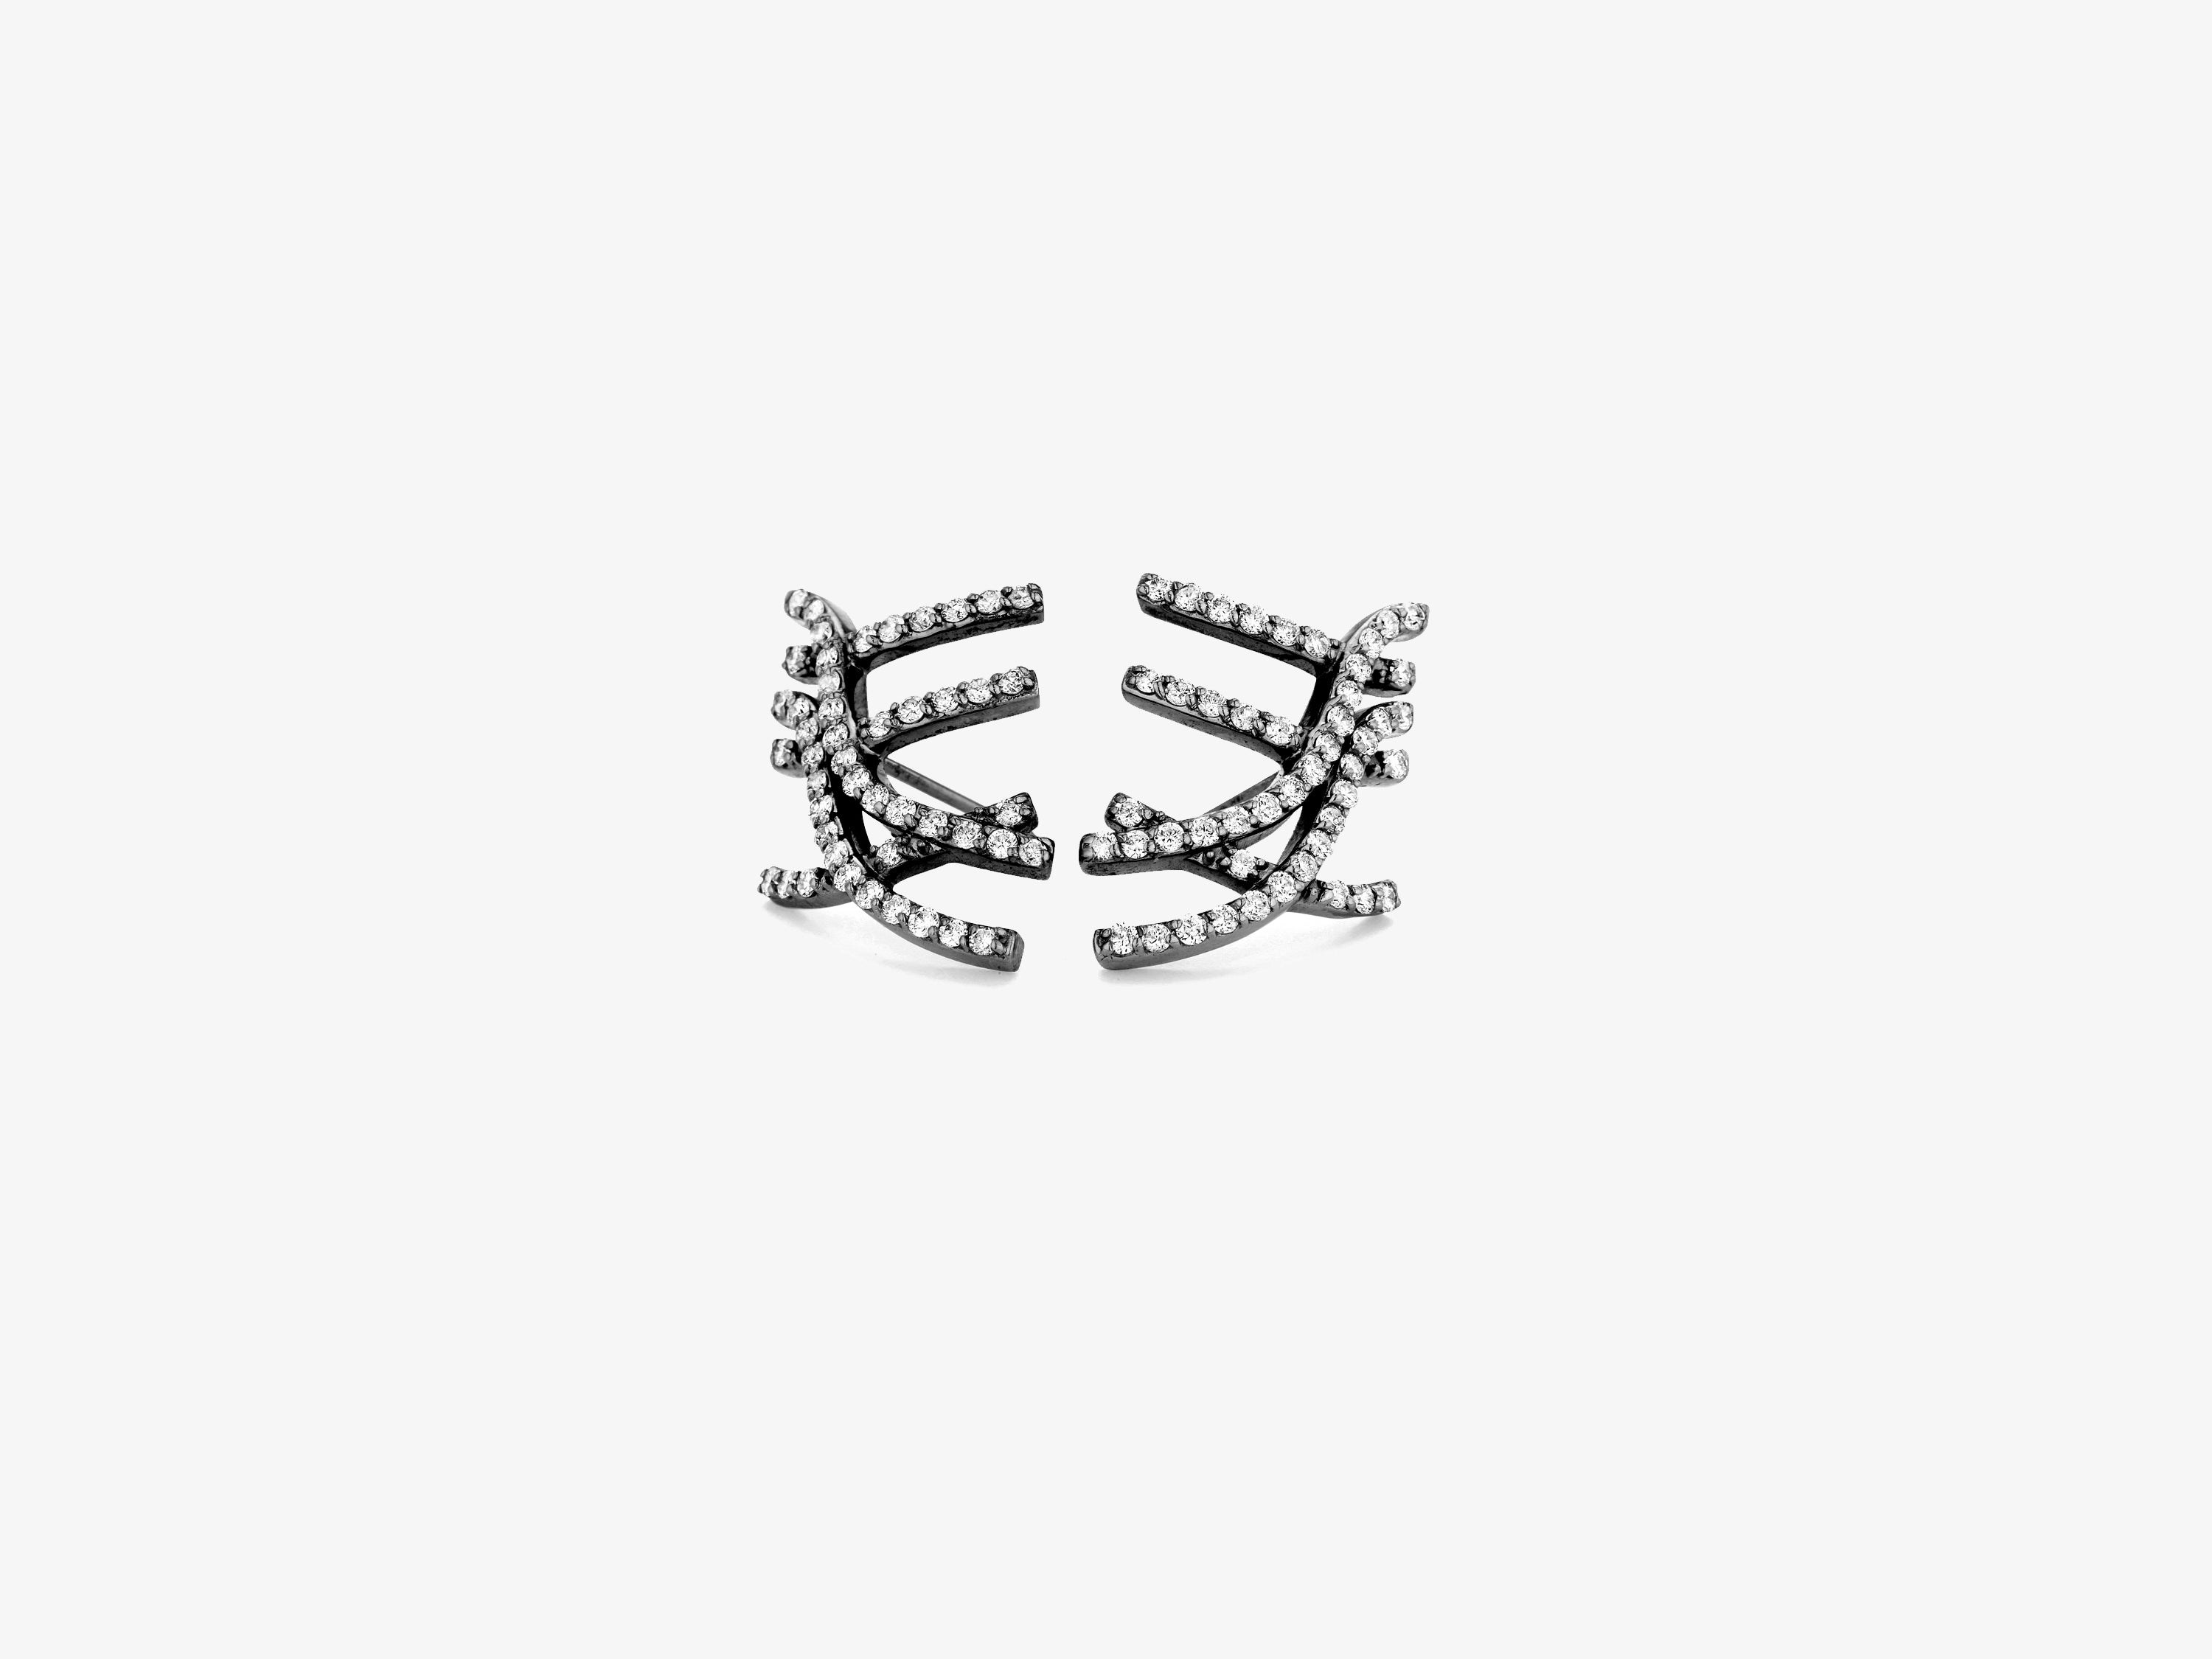 Diamond Pave Curved Line Earrings